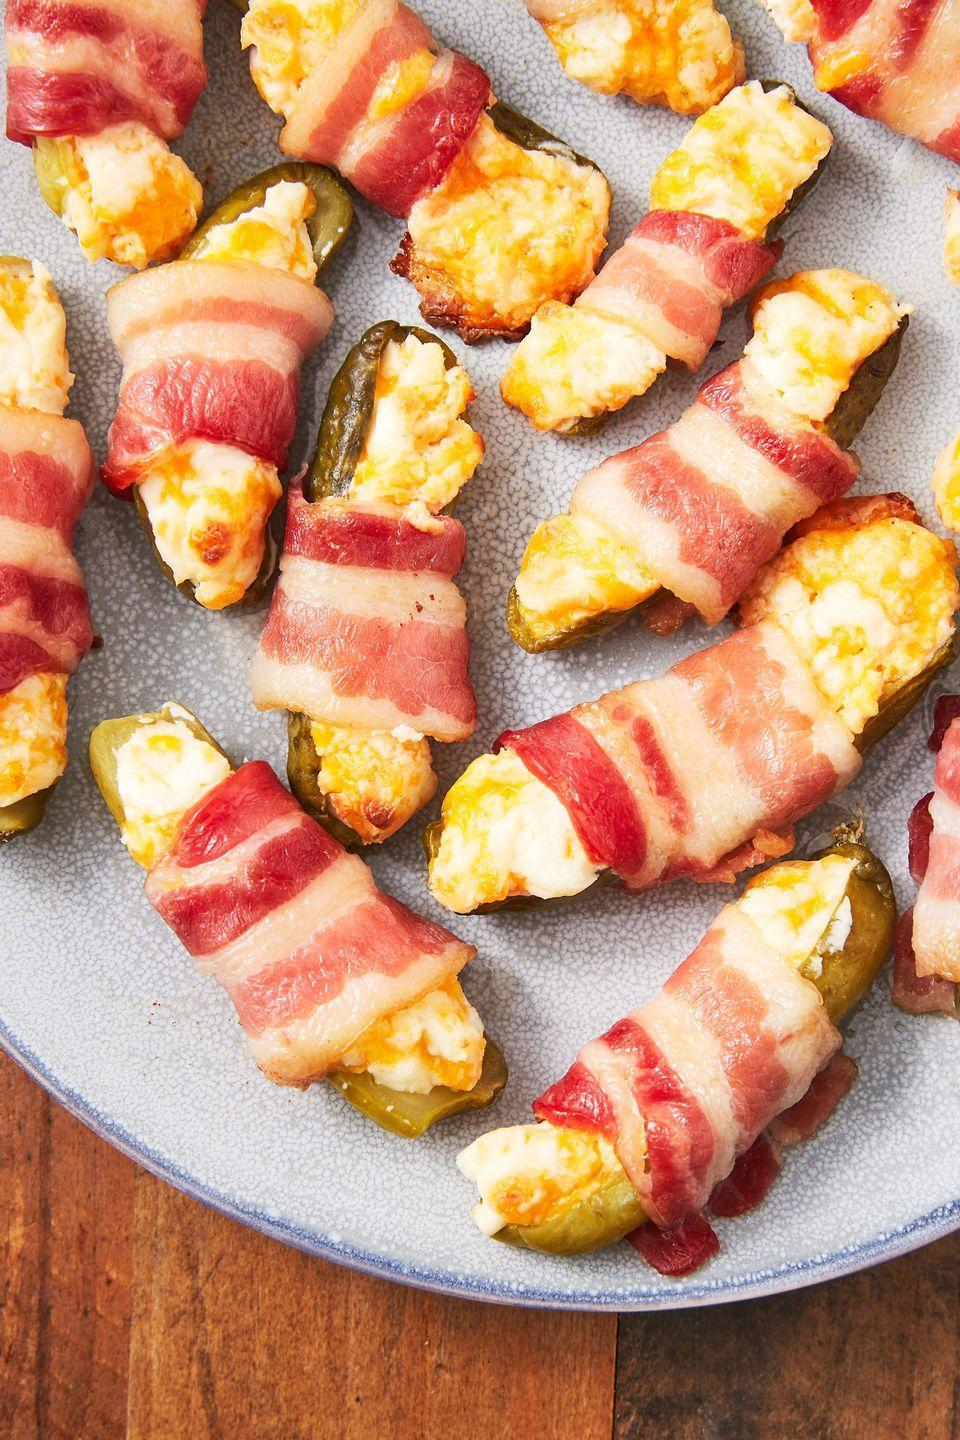 "<p>Pickles are the new pigs in a blanket.</p><p>Get the recipe from <a href=""/cooking/recipe-ideas/recipes/a50084/bacon-wrapped-pickles-recipe/"" data-ylk=""slk:Delish"" class=""link rapid-noclick-resp"">Delish</a>.</p>"